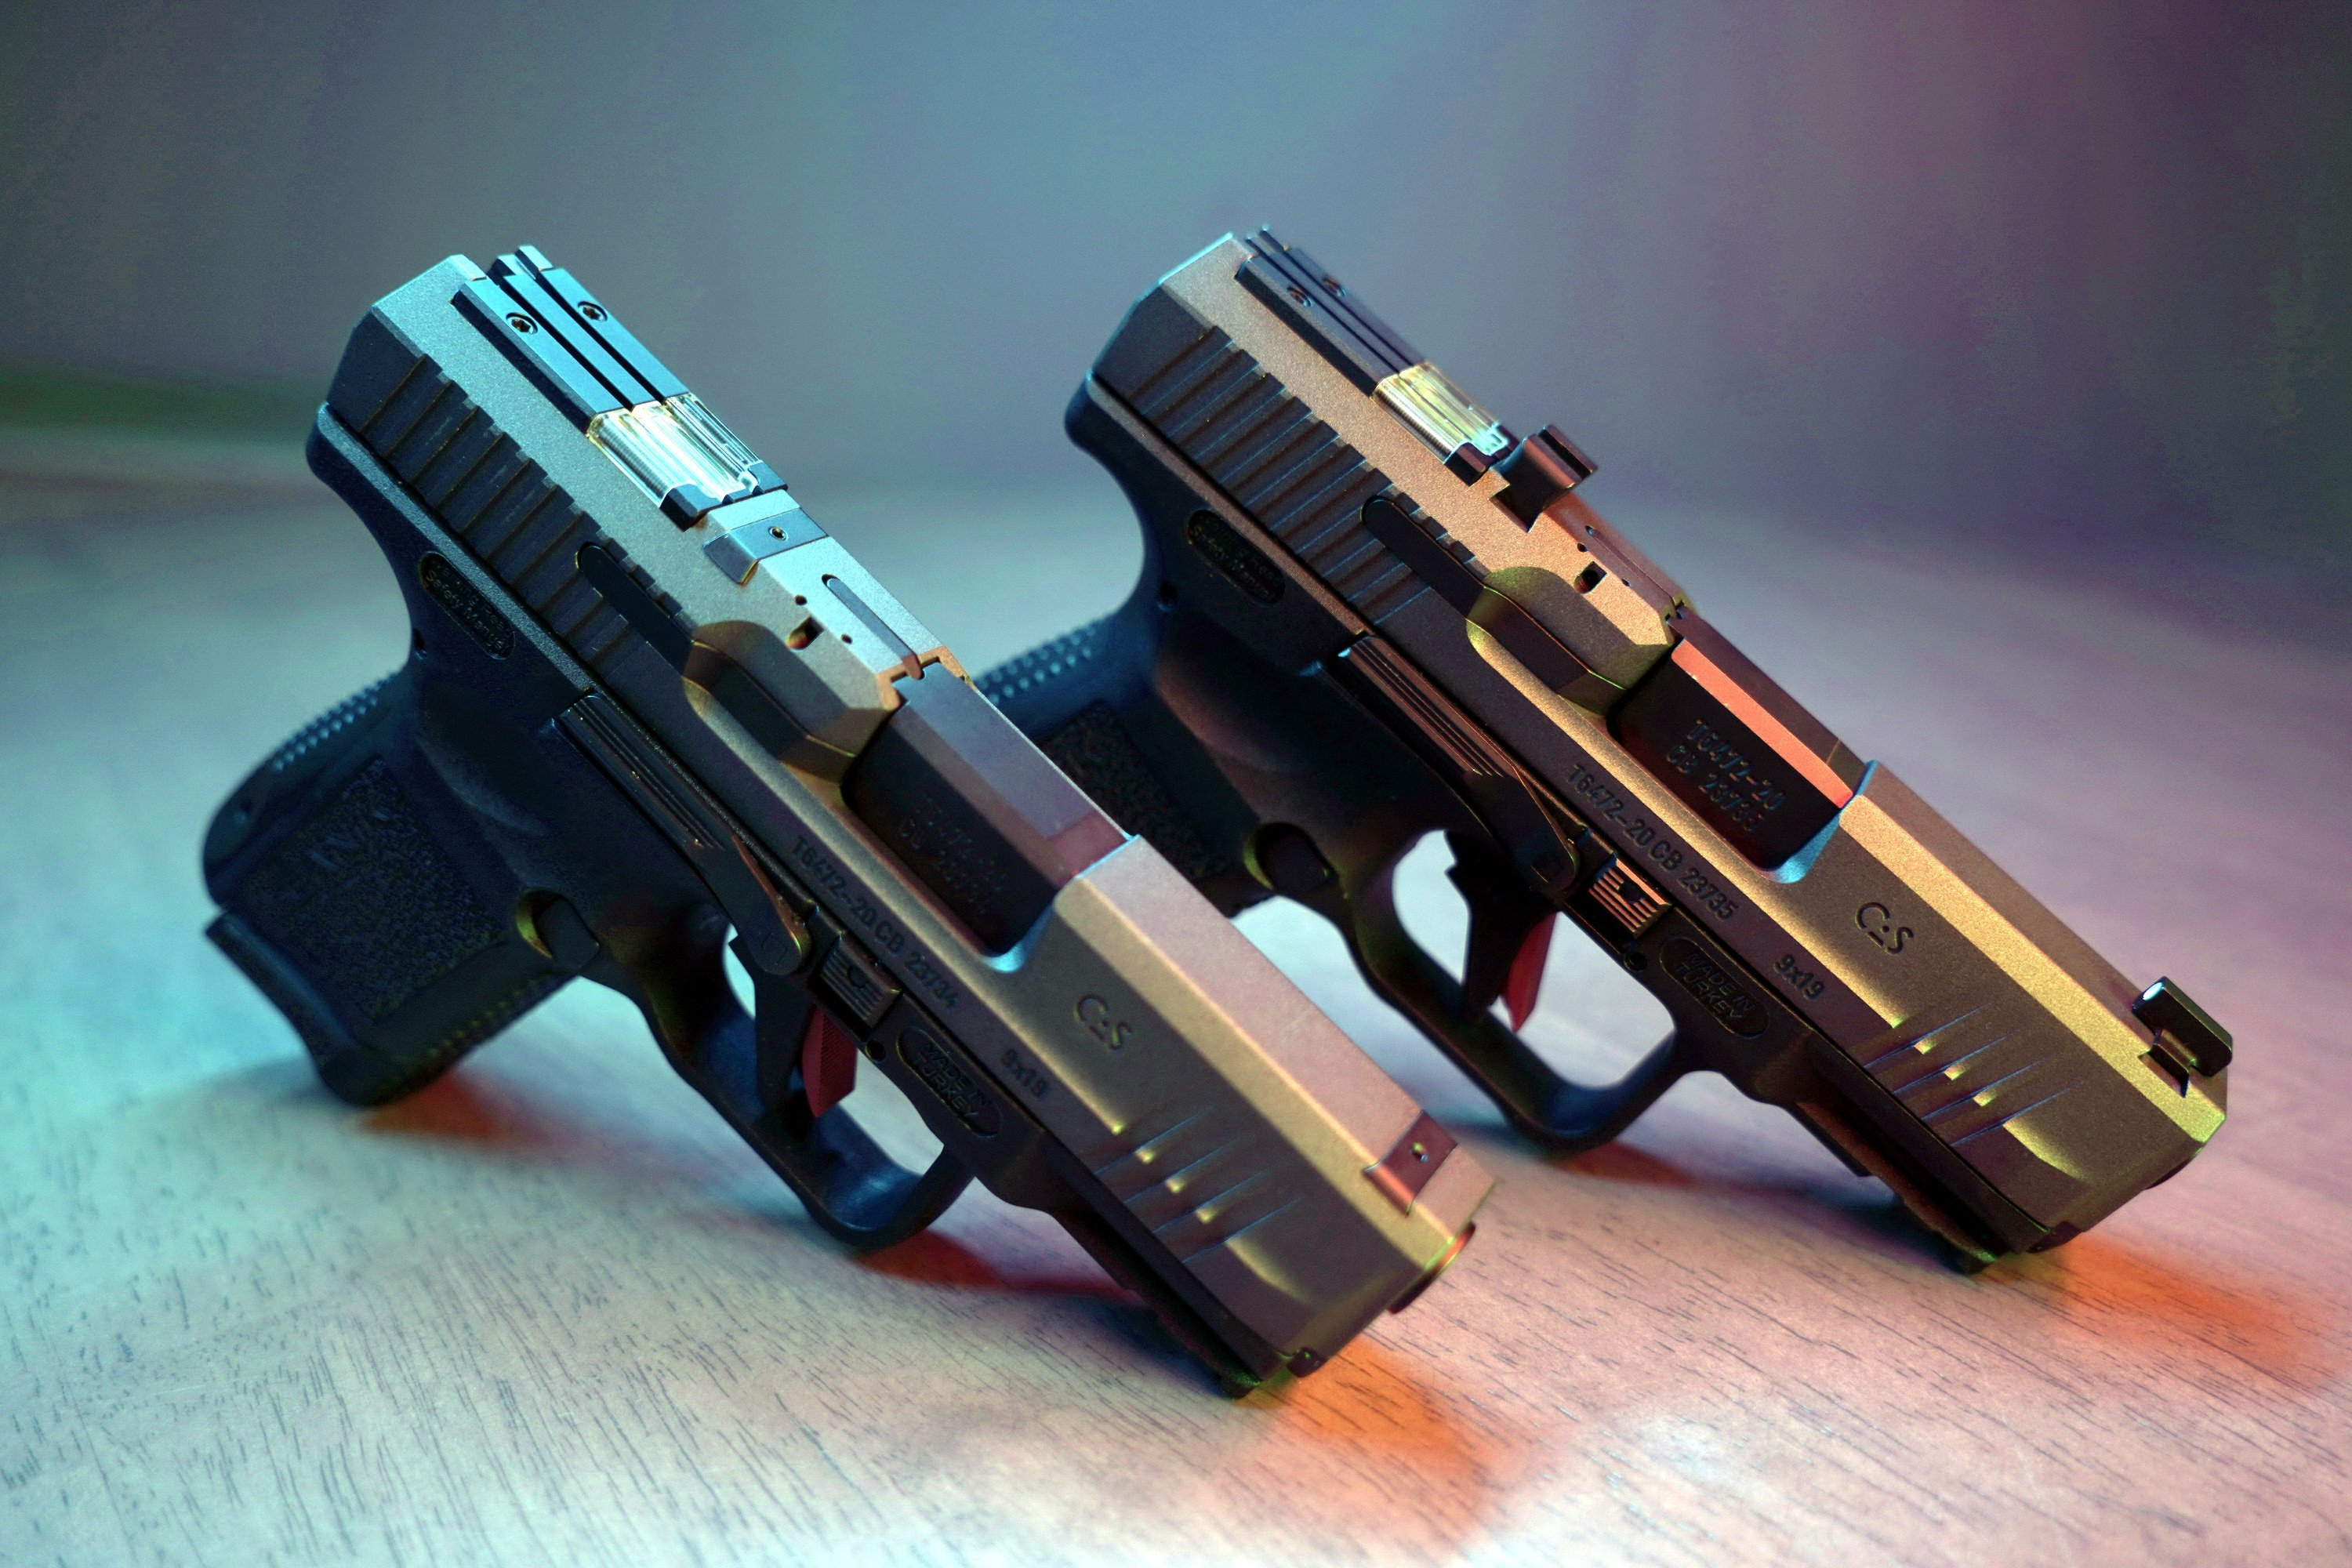 Pistols produced by SYS, June 7, 2021. (IHA Photo)